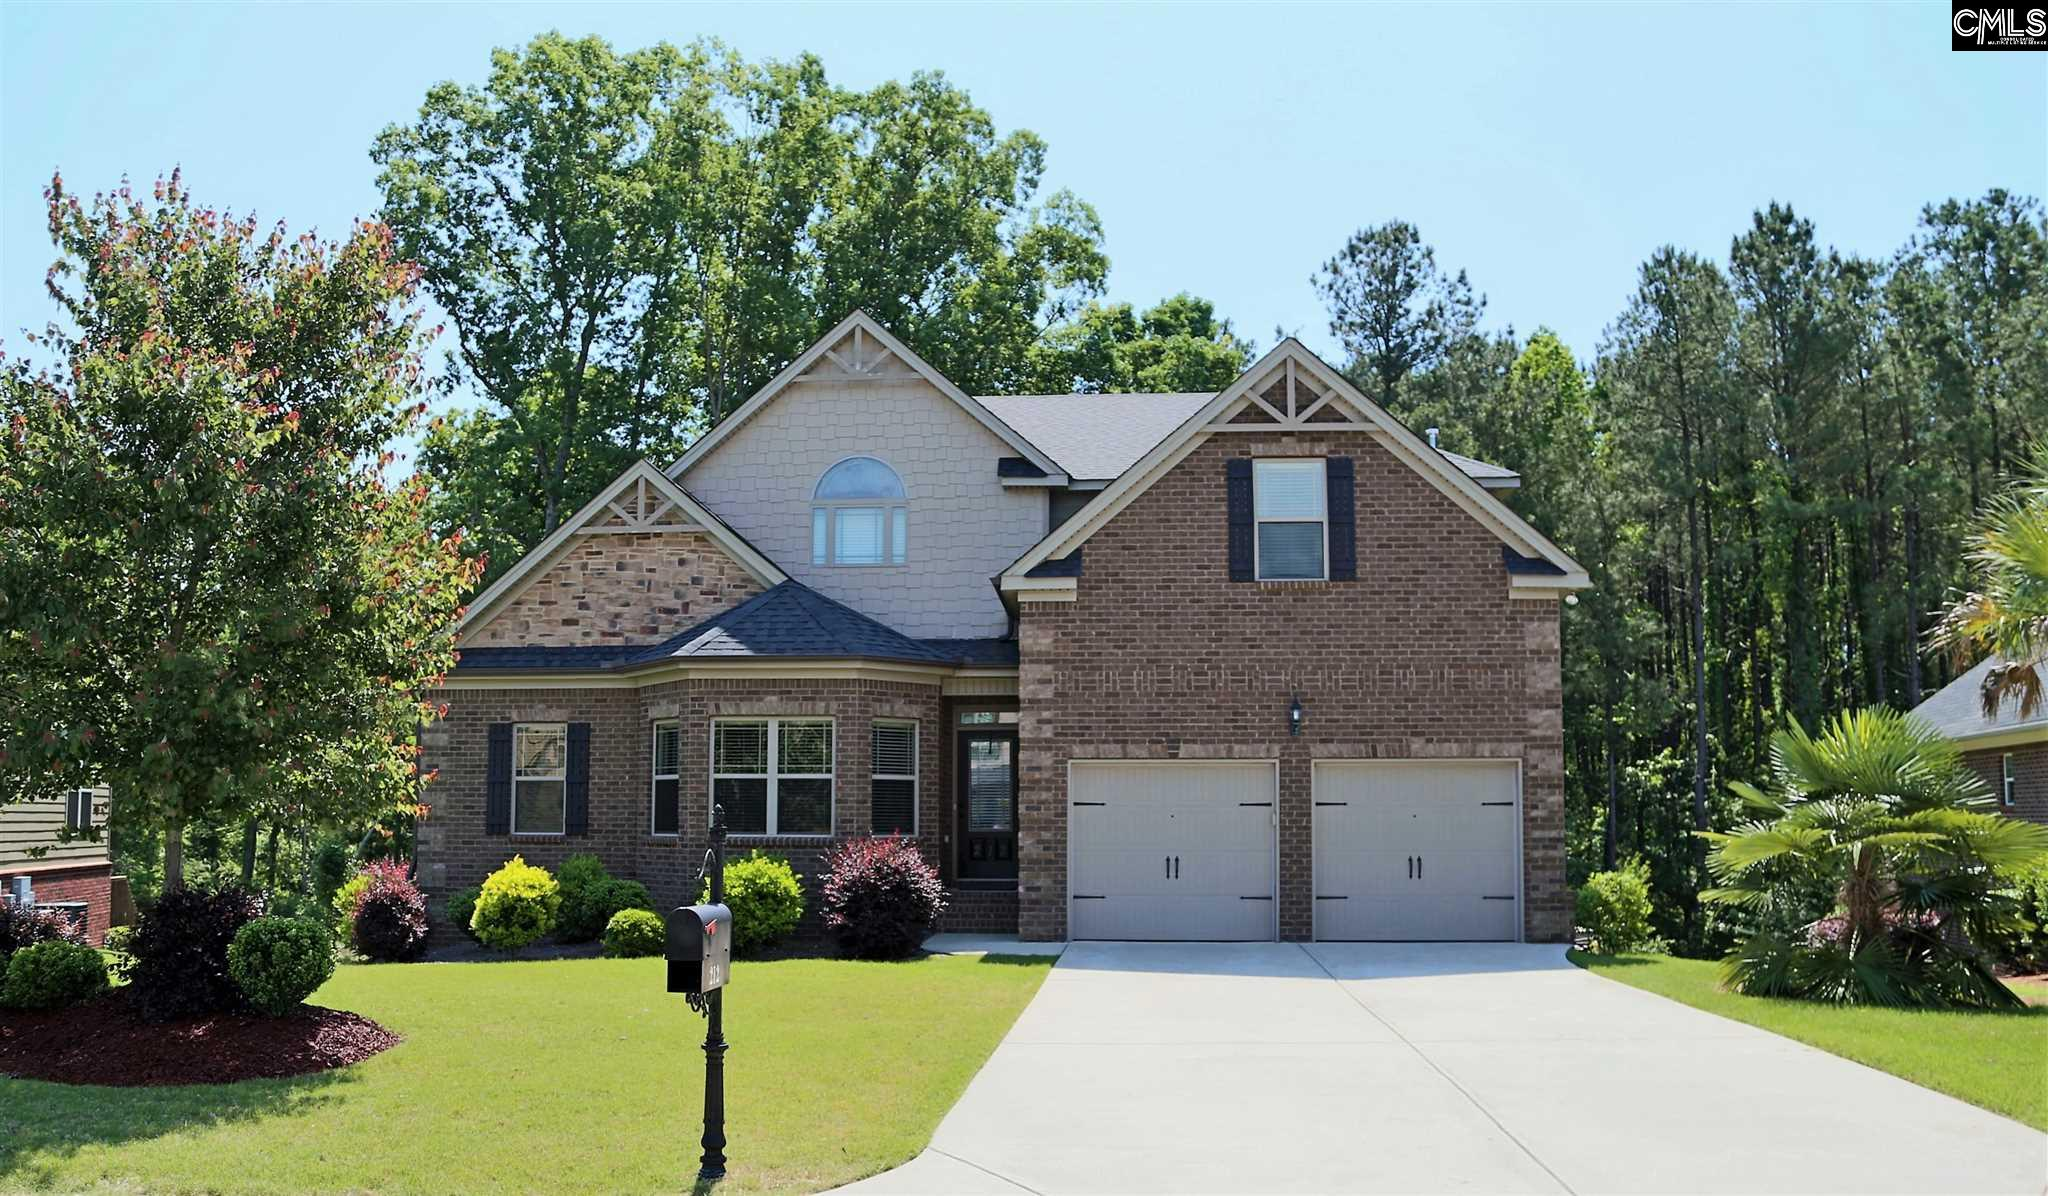 212 Royal Creek Lexington, SC 29072